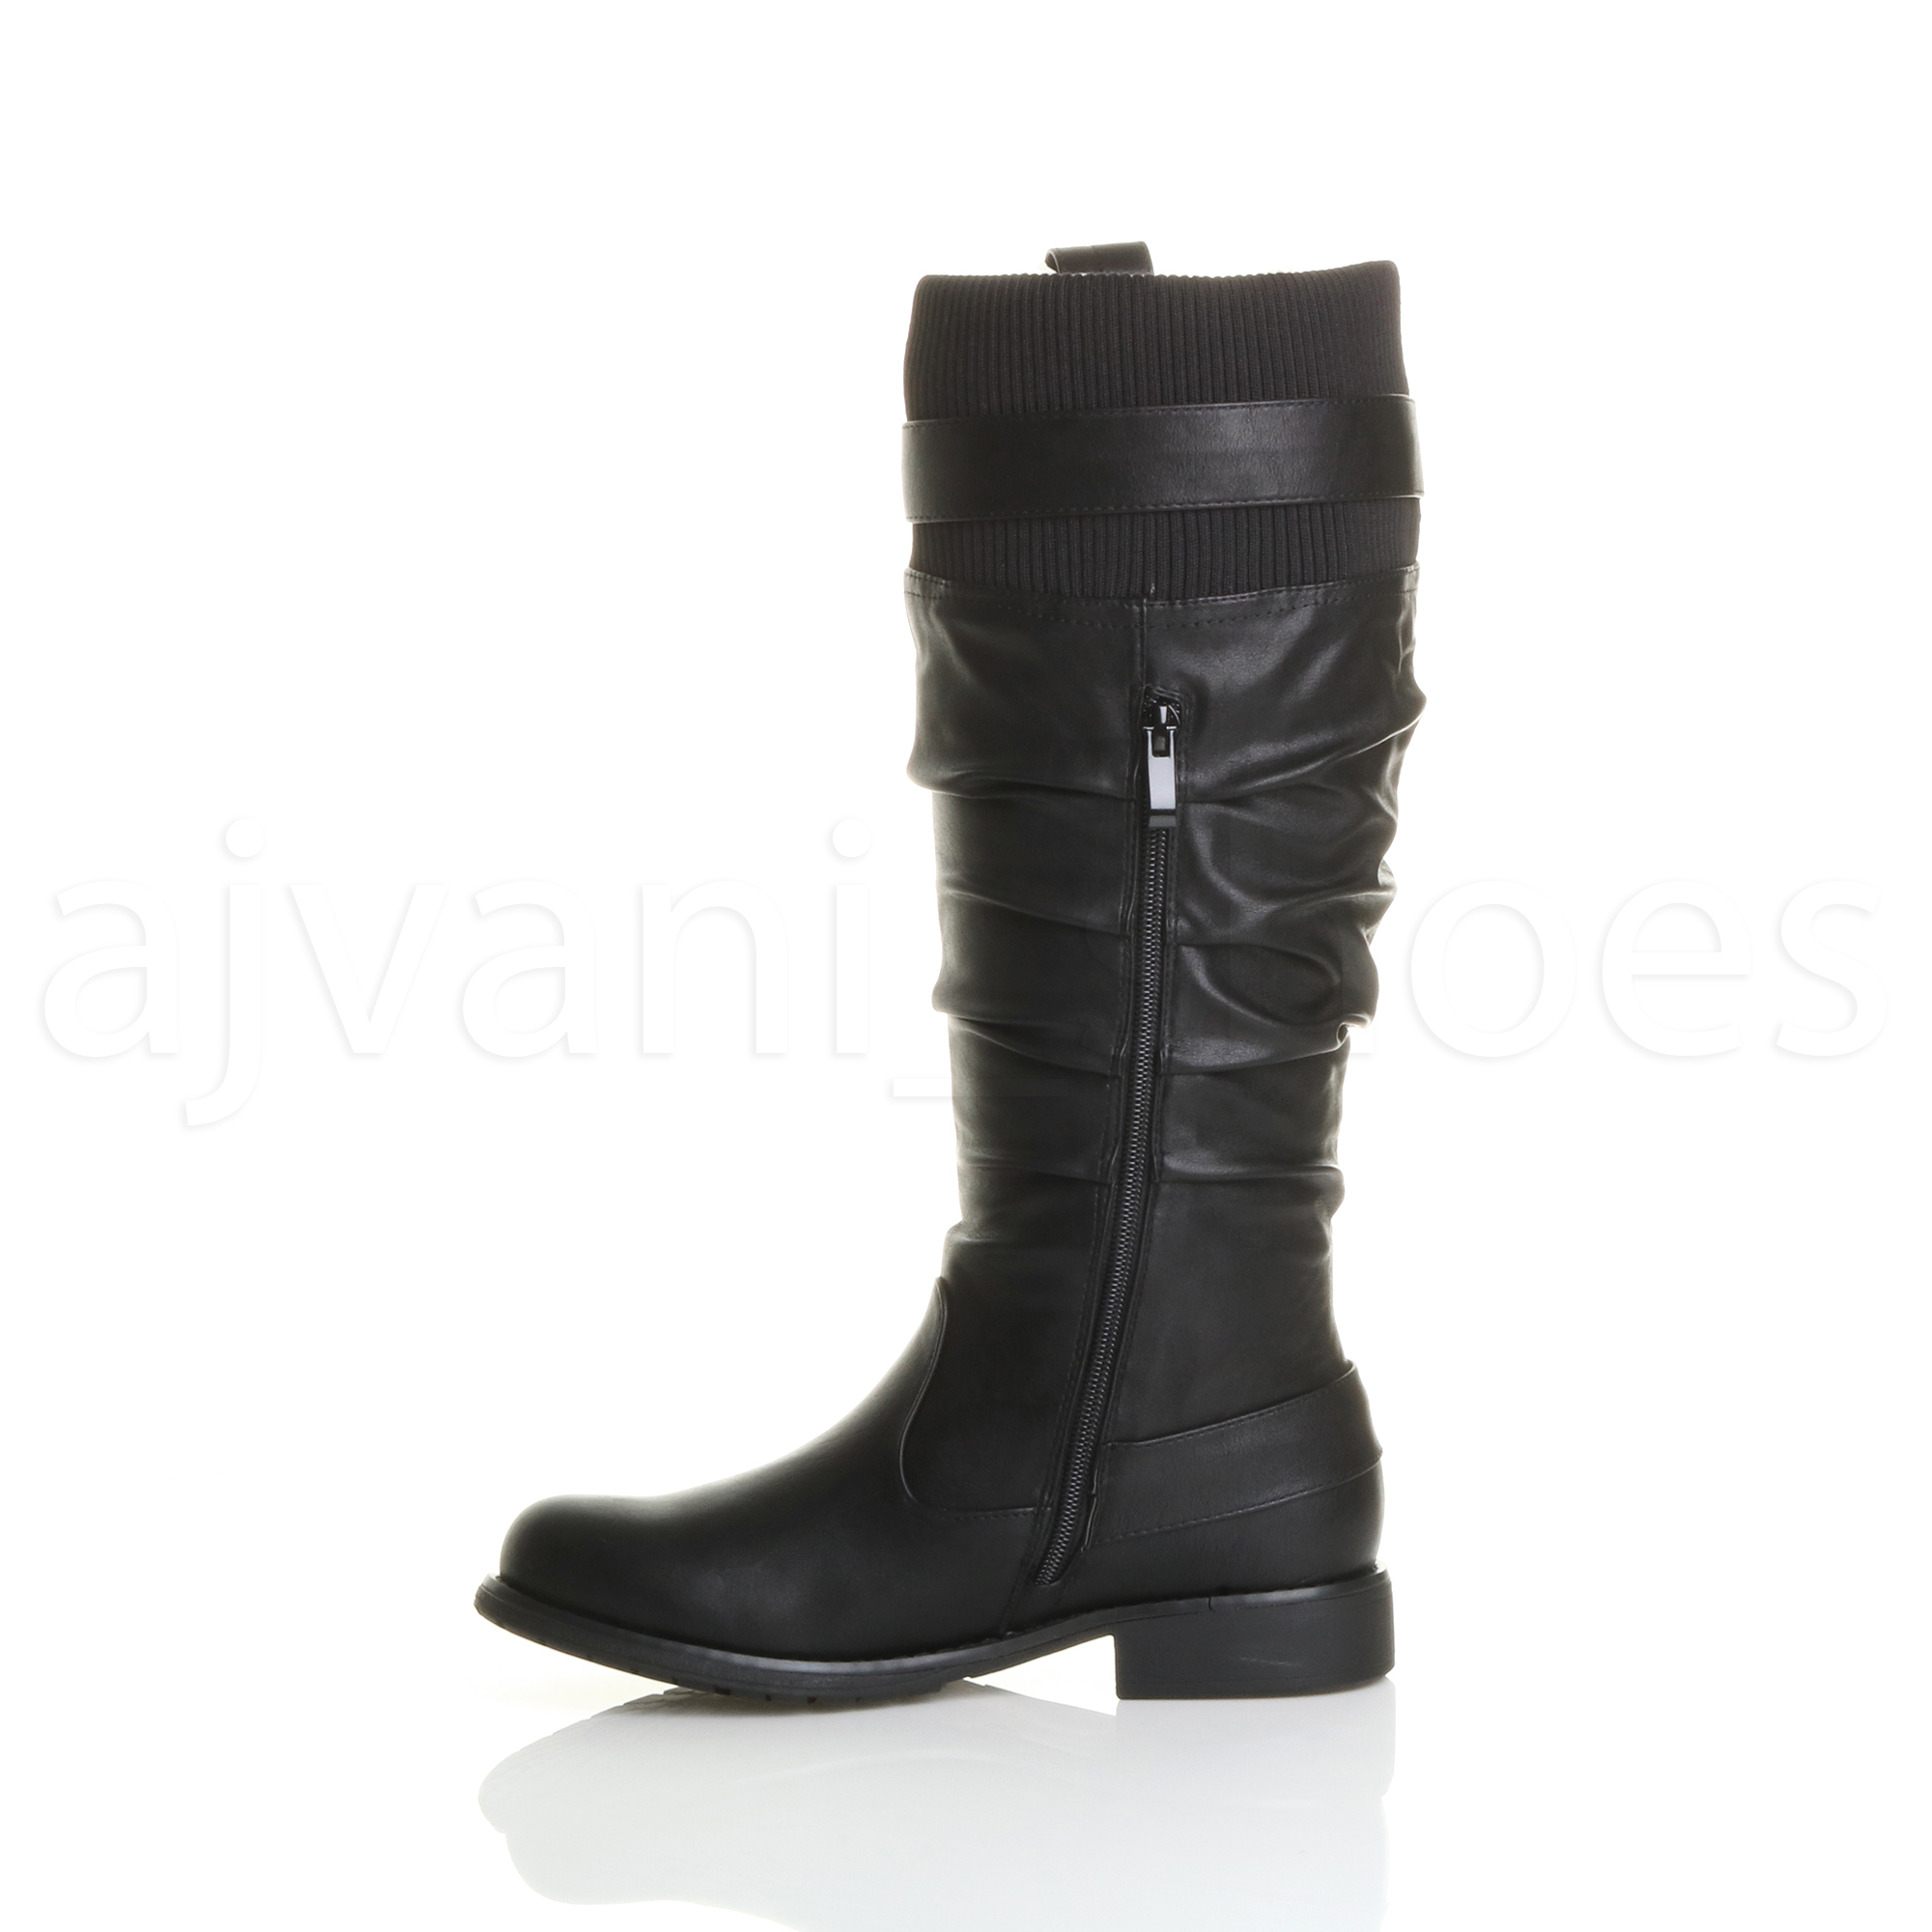 WOMENS-LADIES-LOW-HEEL-ZIP-BUCKLE-SLOUCH-KNEE-CALF-KNITTED-CUFF-BIKER-BOOTS-SIZE